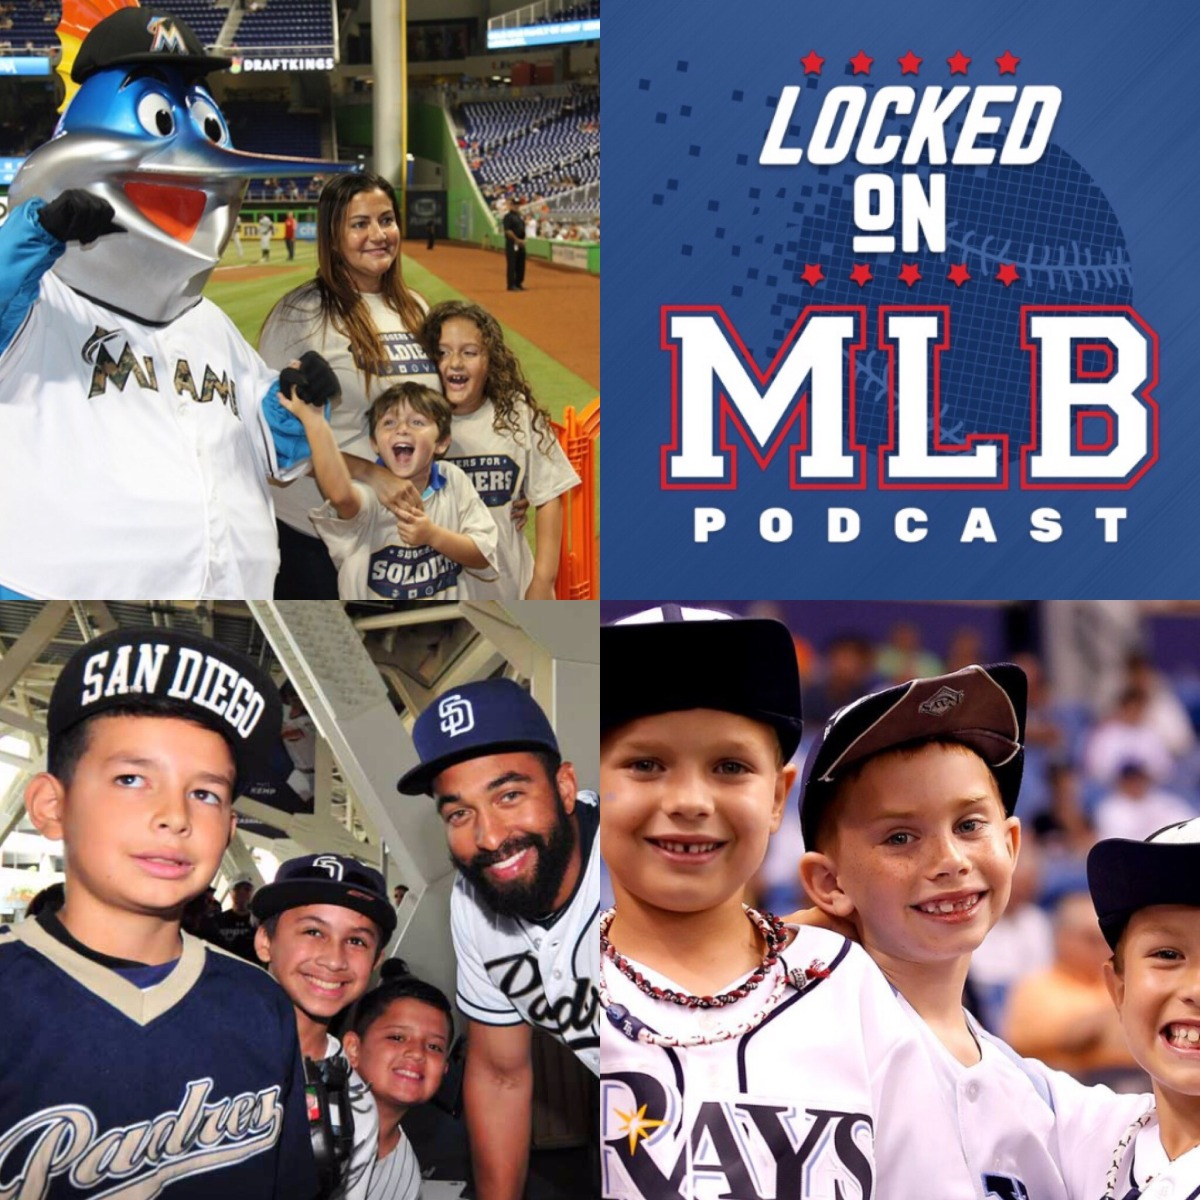 Fanbase Devotion in Unusual Places - @LockedOnMLB for April 19, 2019